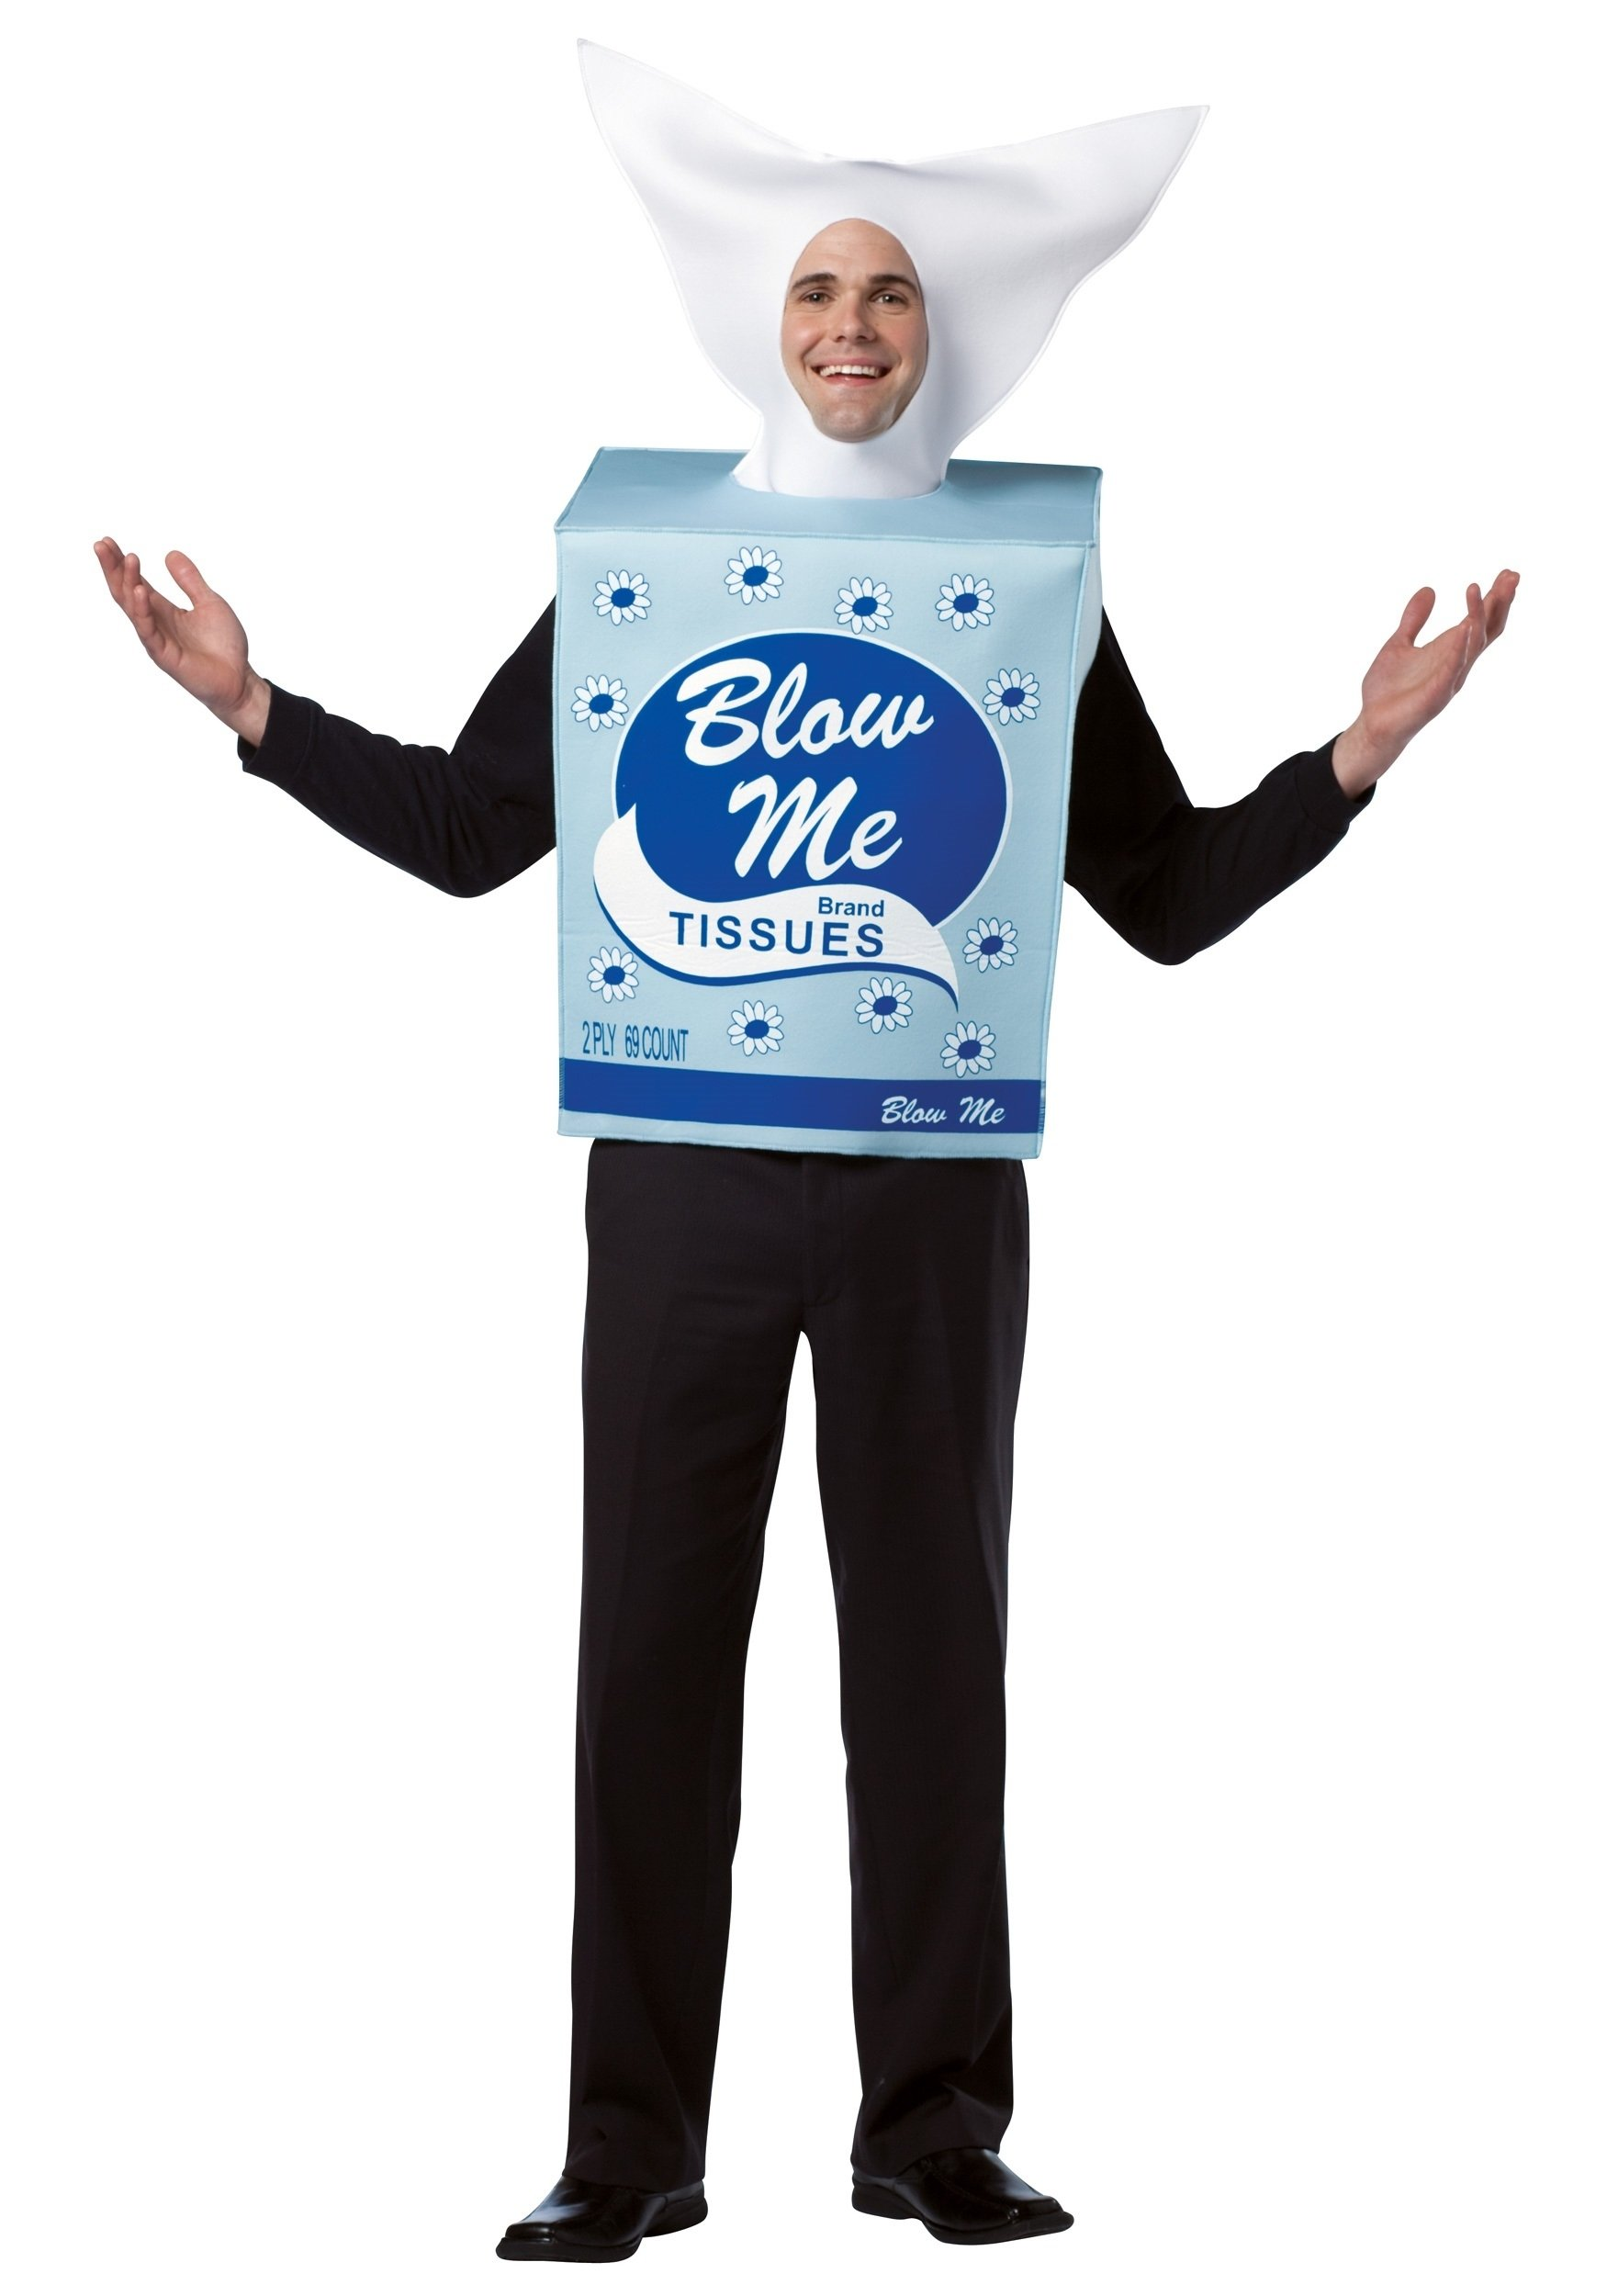 10 Stylish Ideas For Adult Halloween Costumes blow me tissues costume halloween costumes 2020